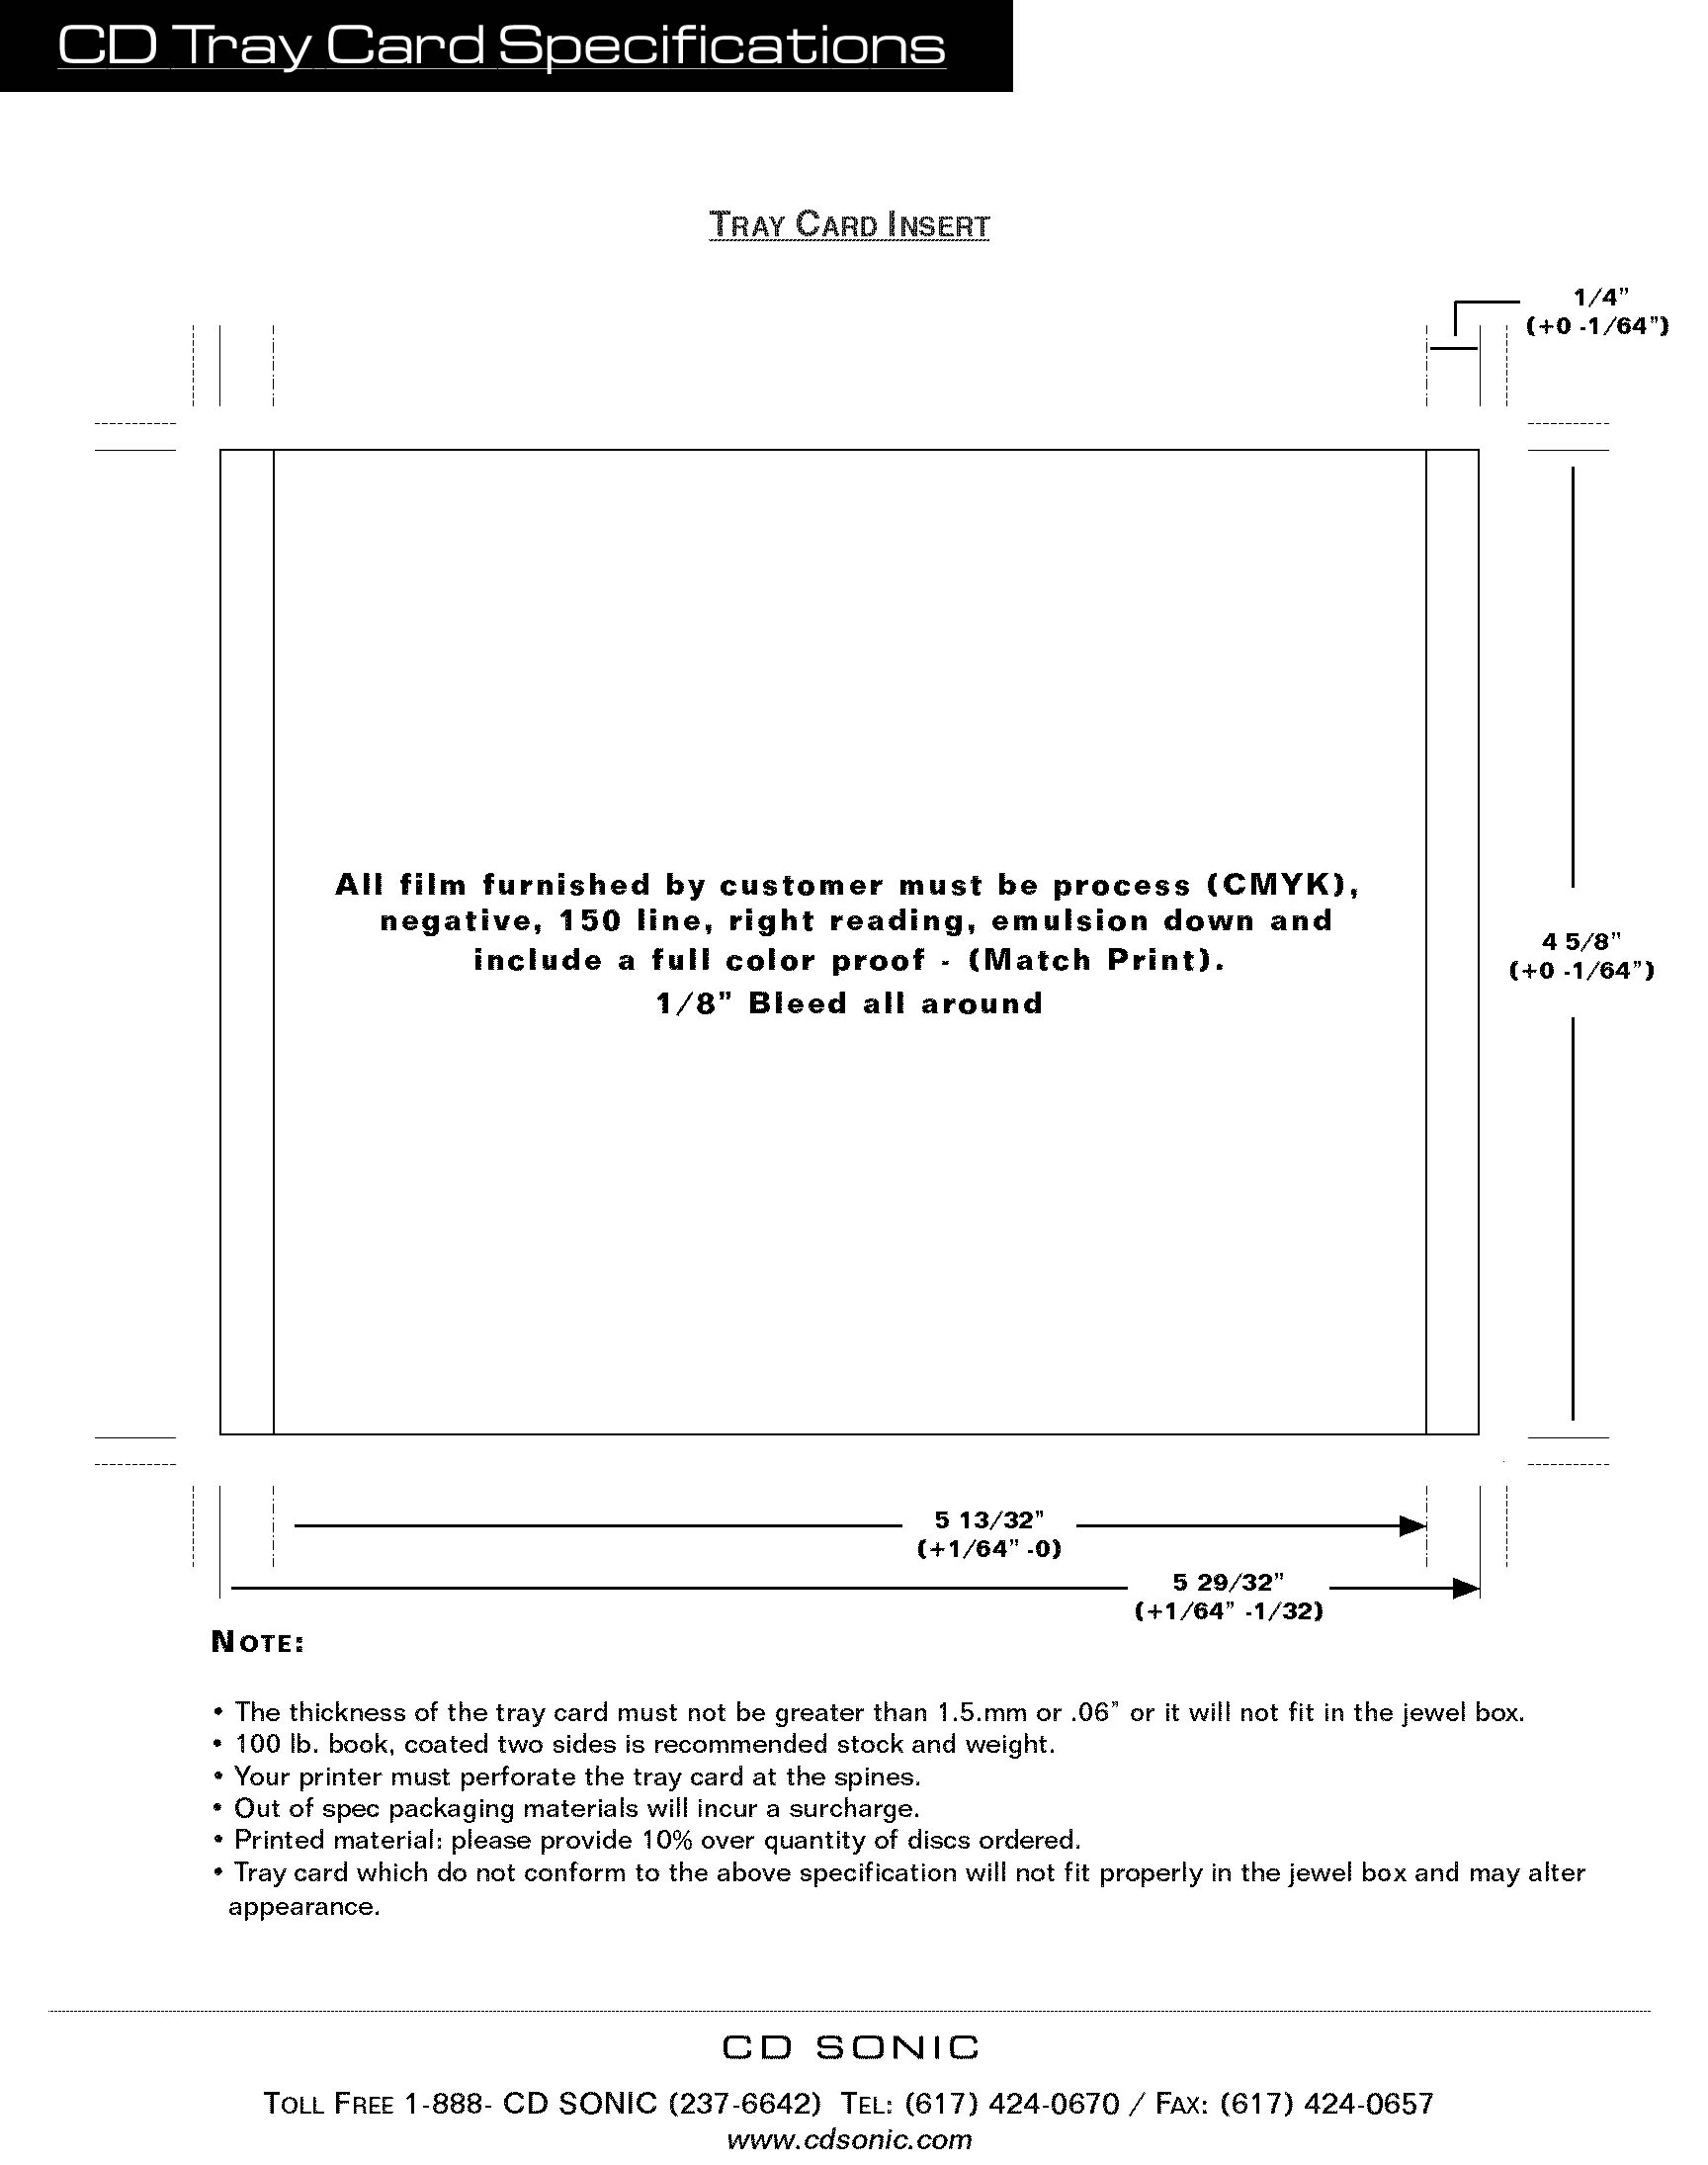 CD Sonic - Forms u0026 Templates - Audio cd duplication, manufacturing ...